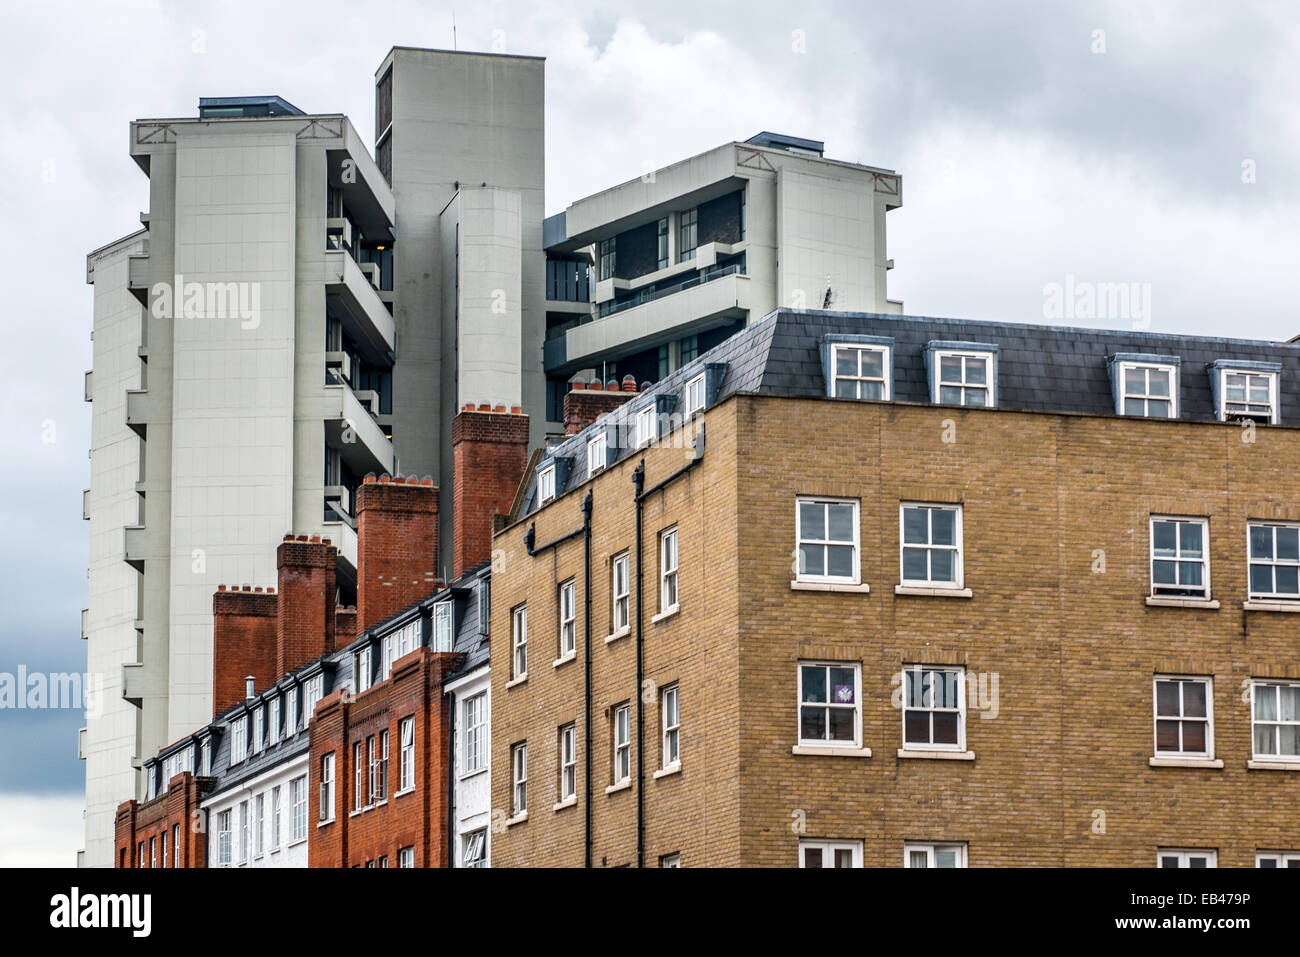 High rise social housing in the Borough of Hackney, East london - Stock Image